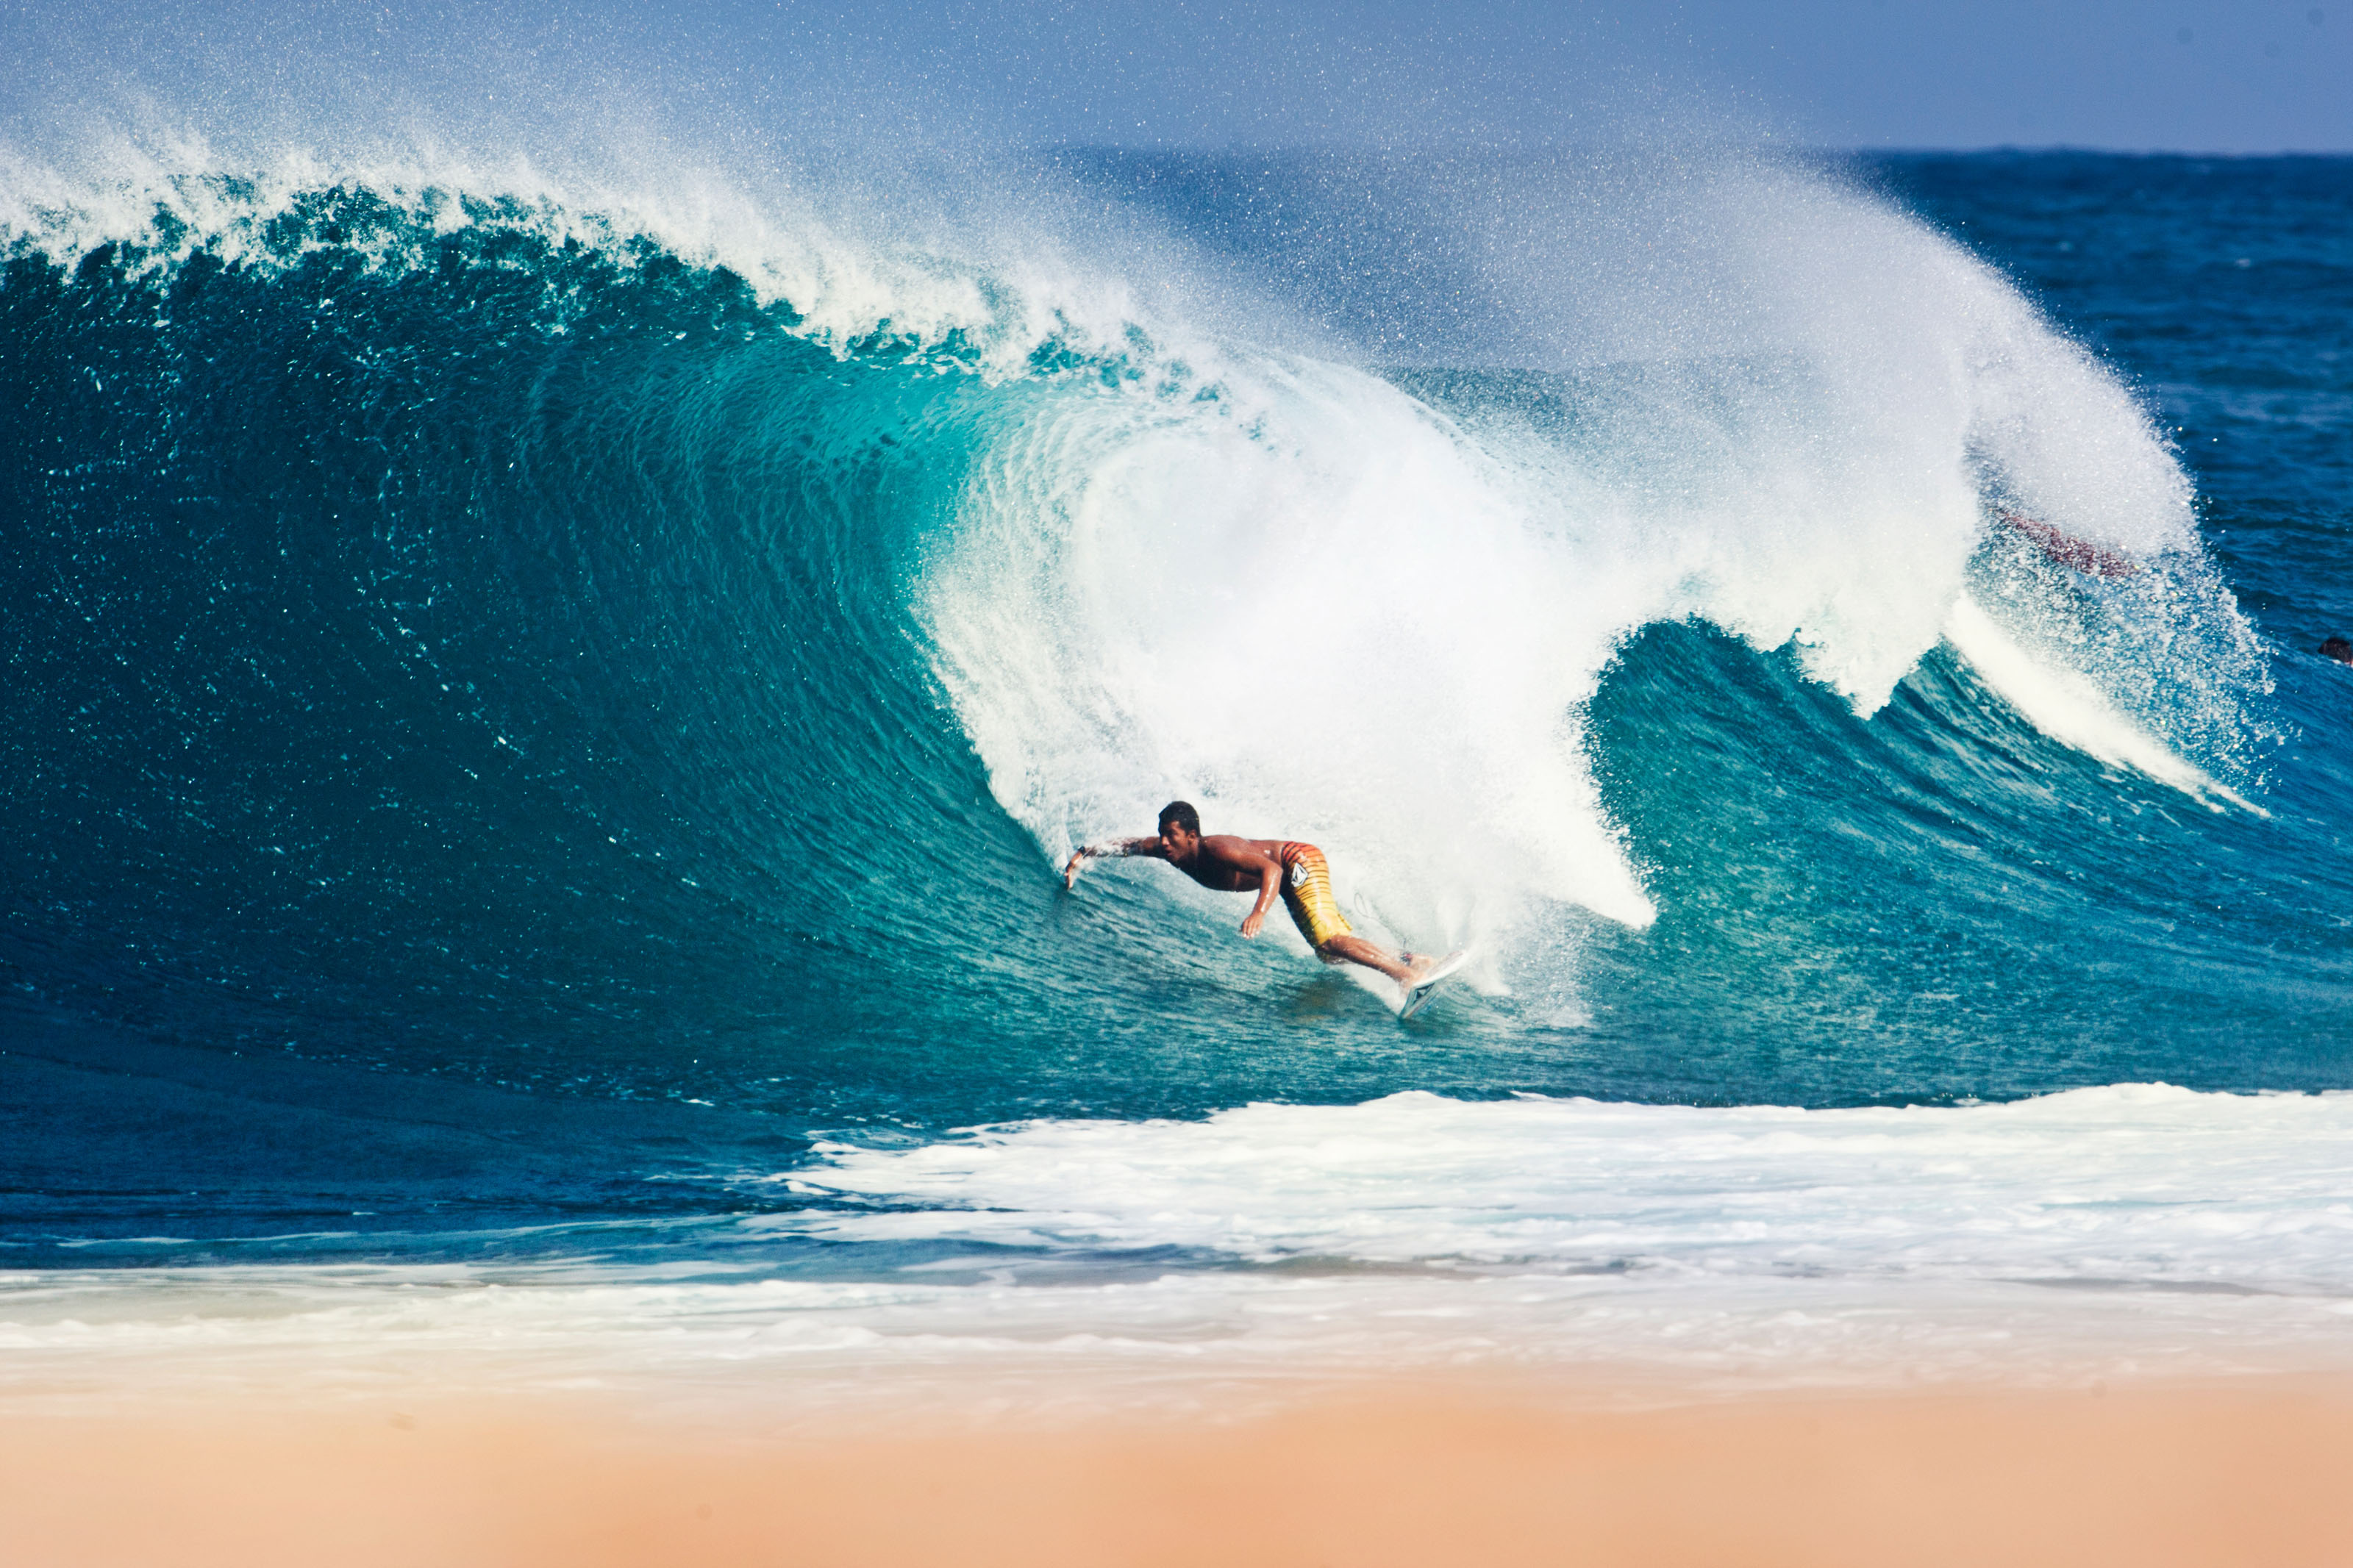 Carlos Munos surfing in Hawaii